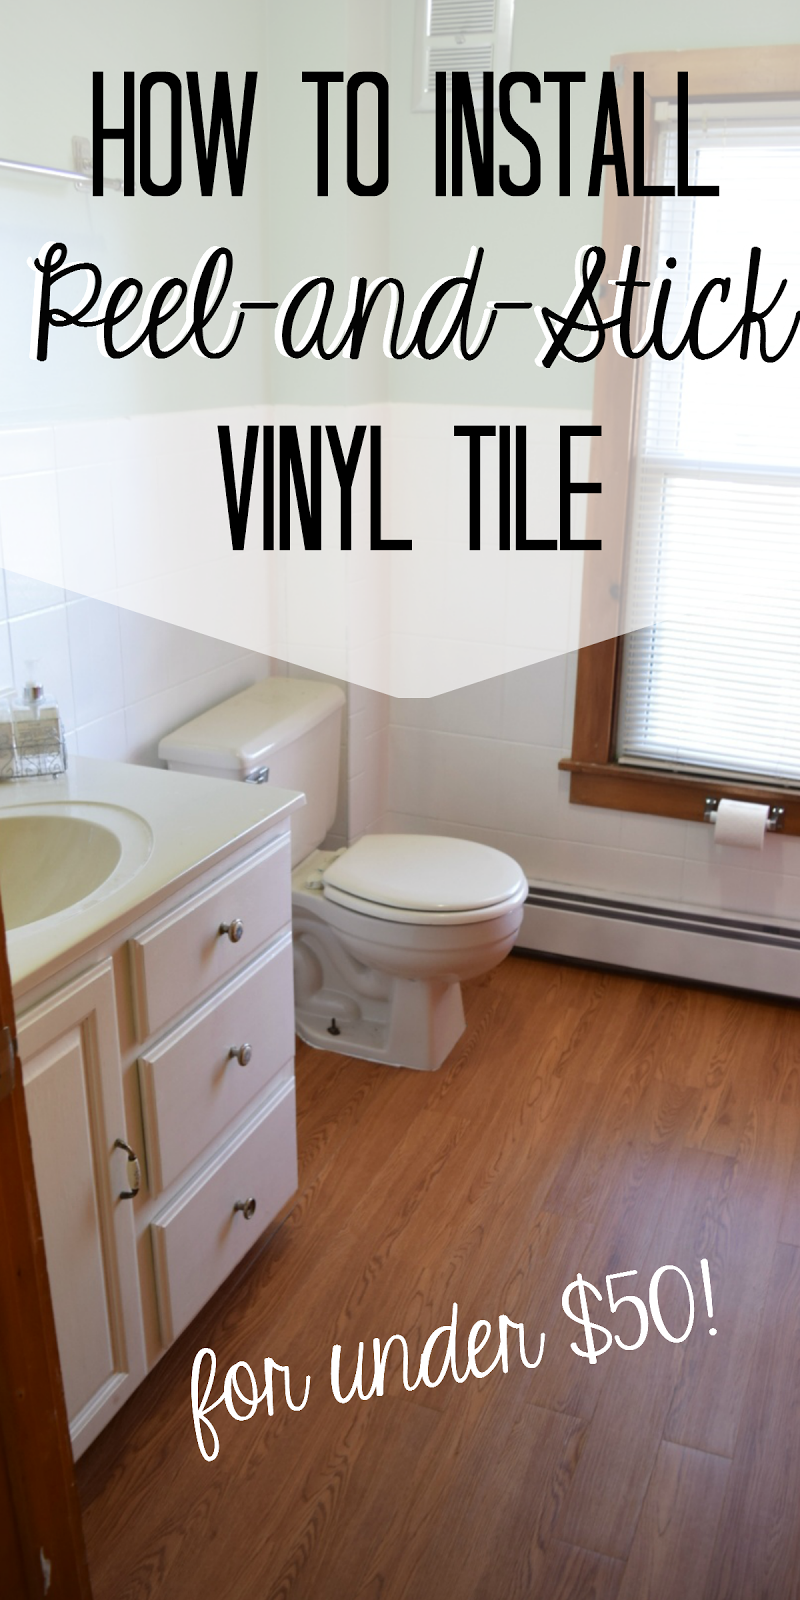 Install Peel-And-Stick Vinyl Floor Planks in the Bathroom | Cheap ...